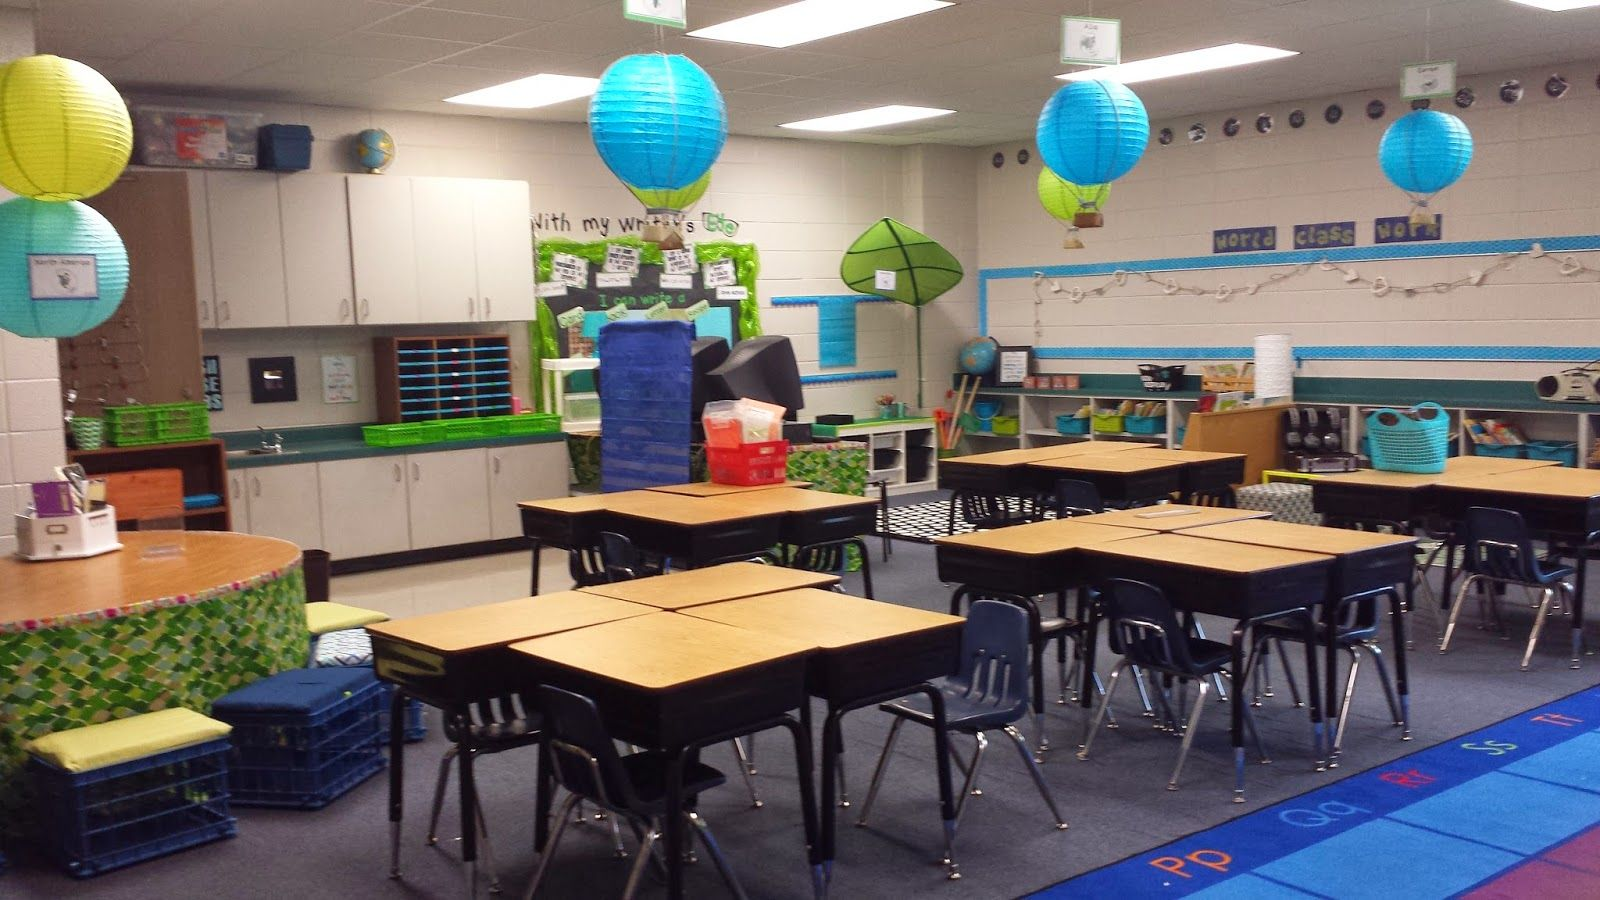 Hot Air Balloon table groups with continent signs! Traveling themed classroom